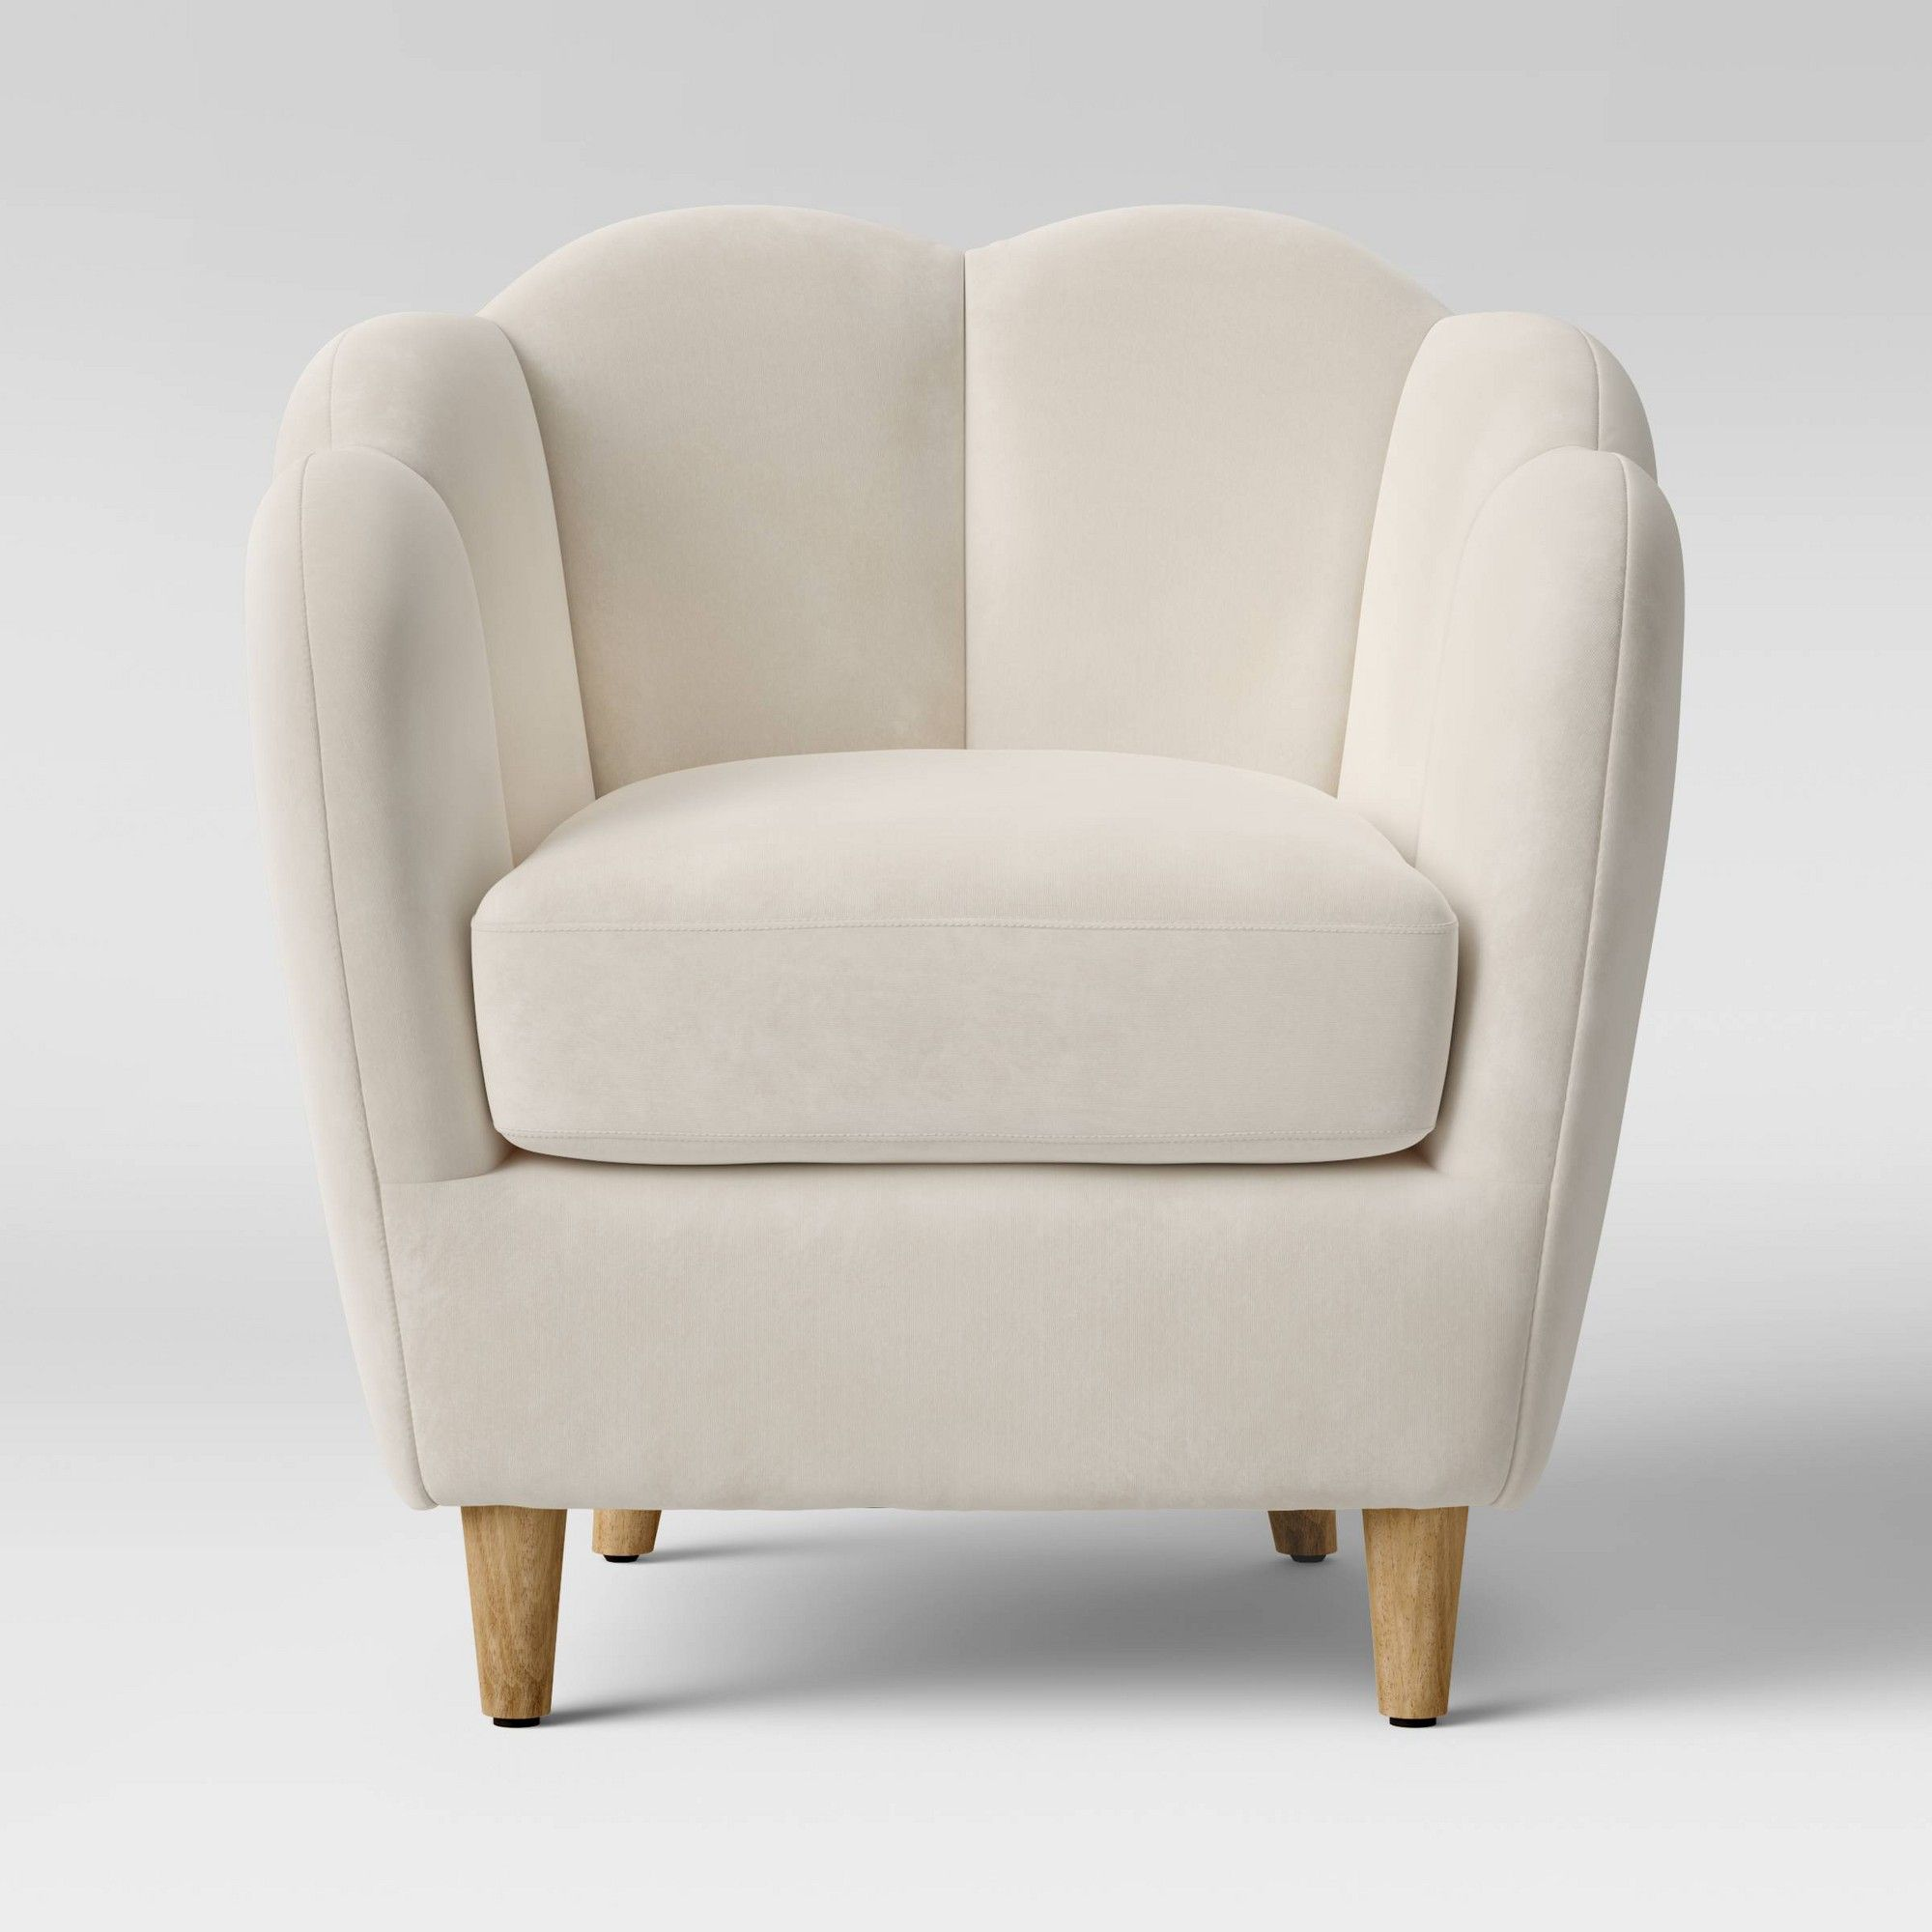 Waterville Upholstered Accent Chair Cream Opalhouse In 2020